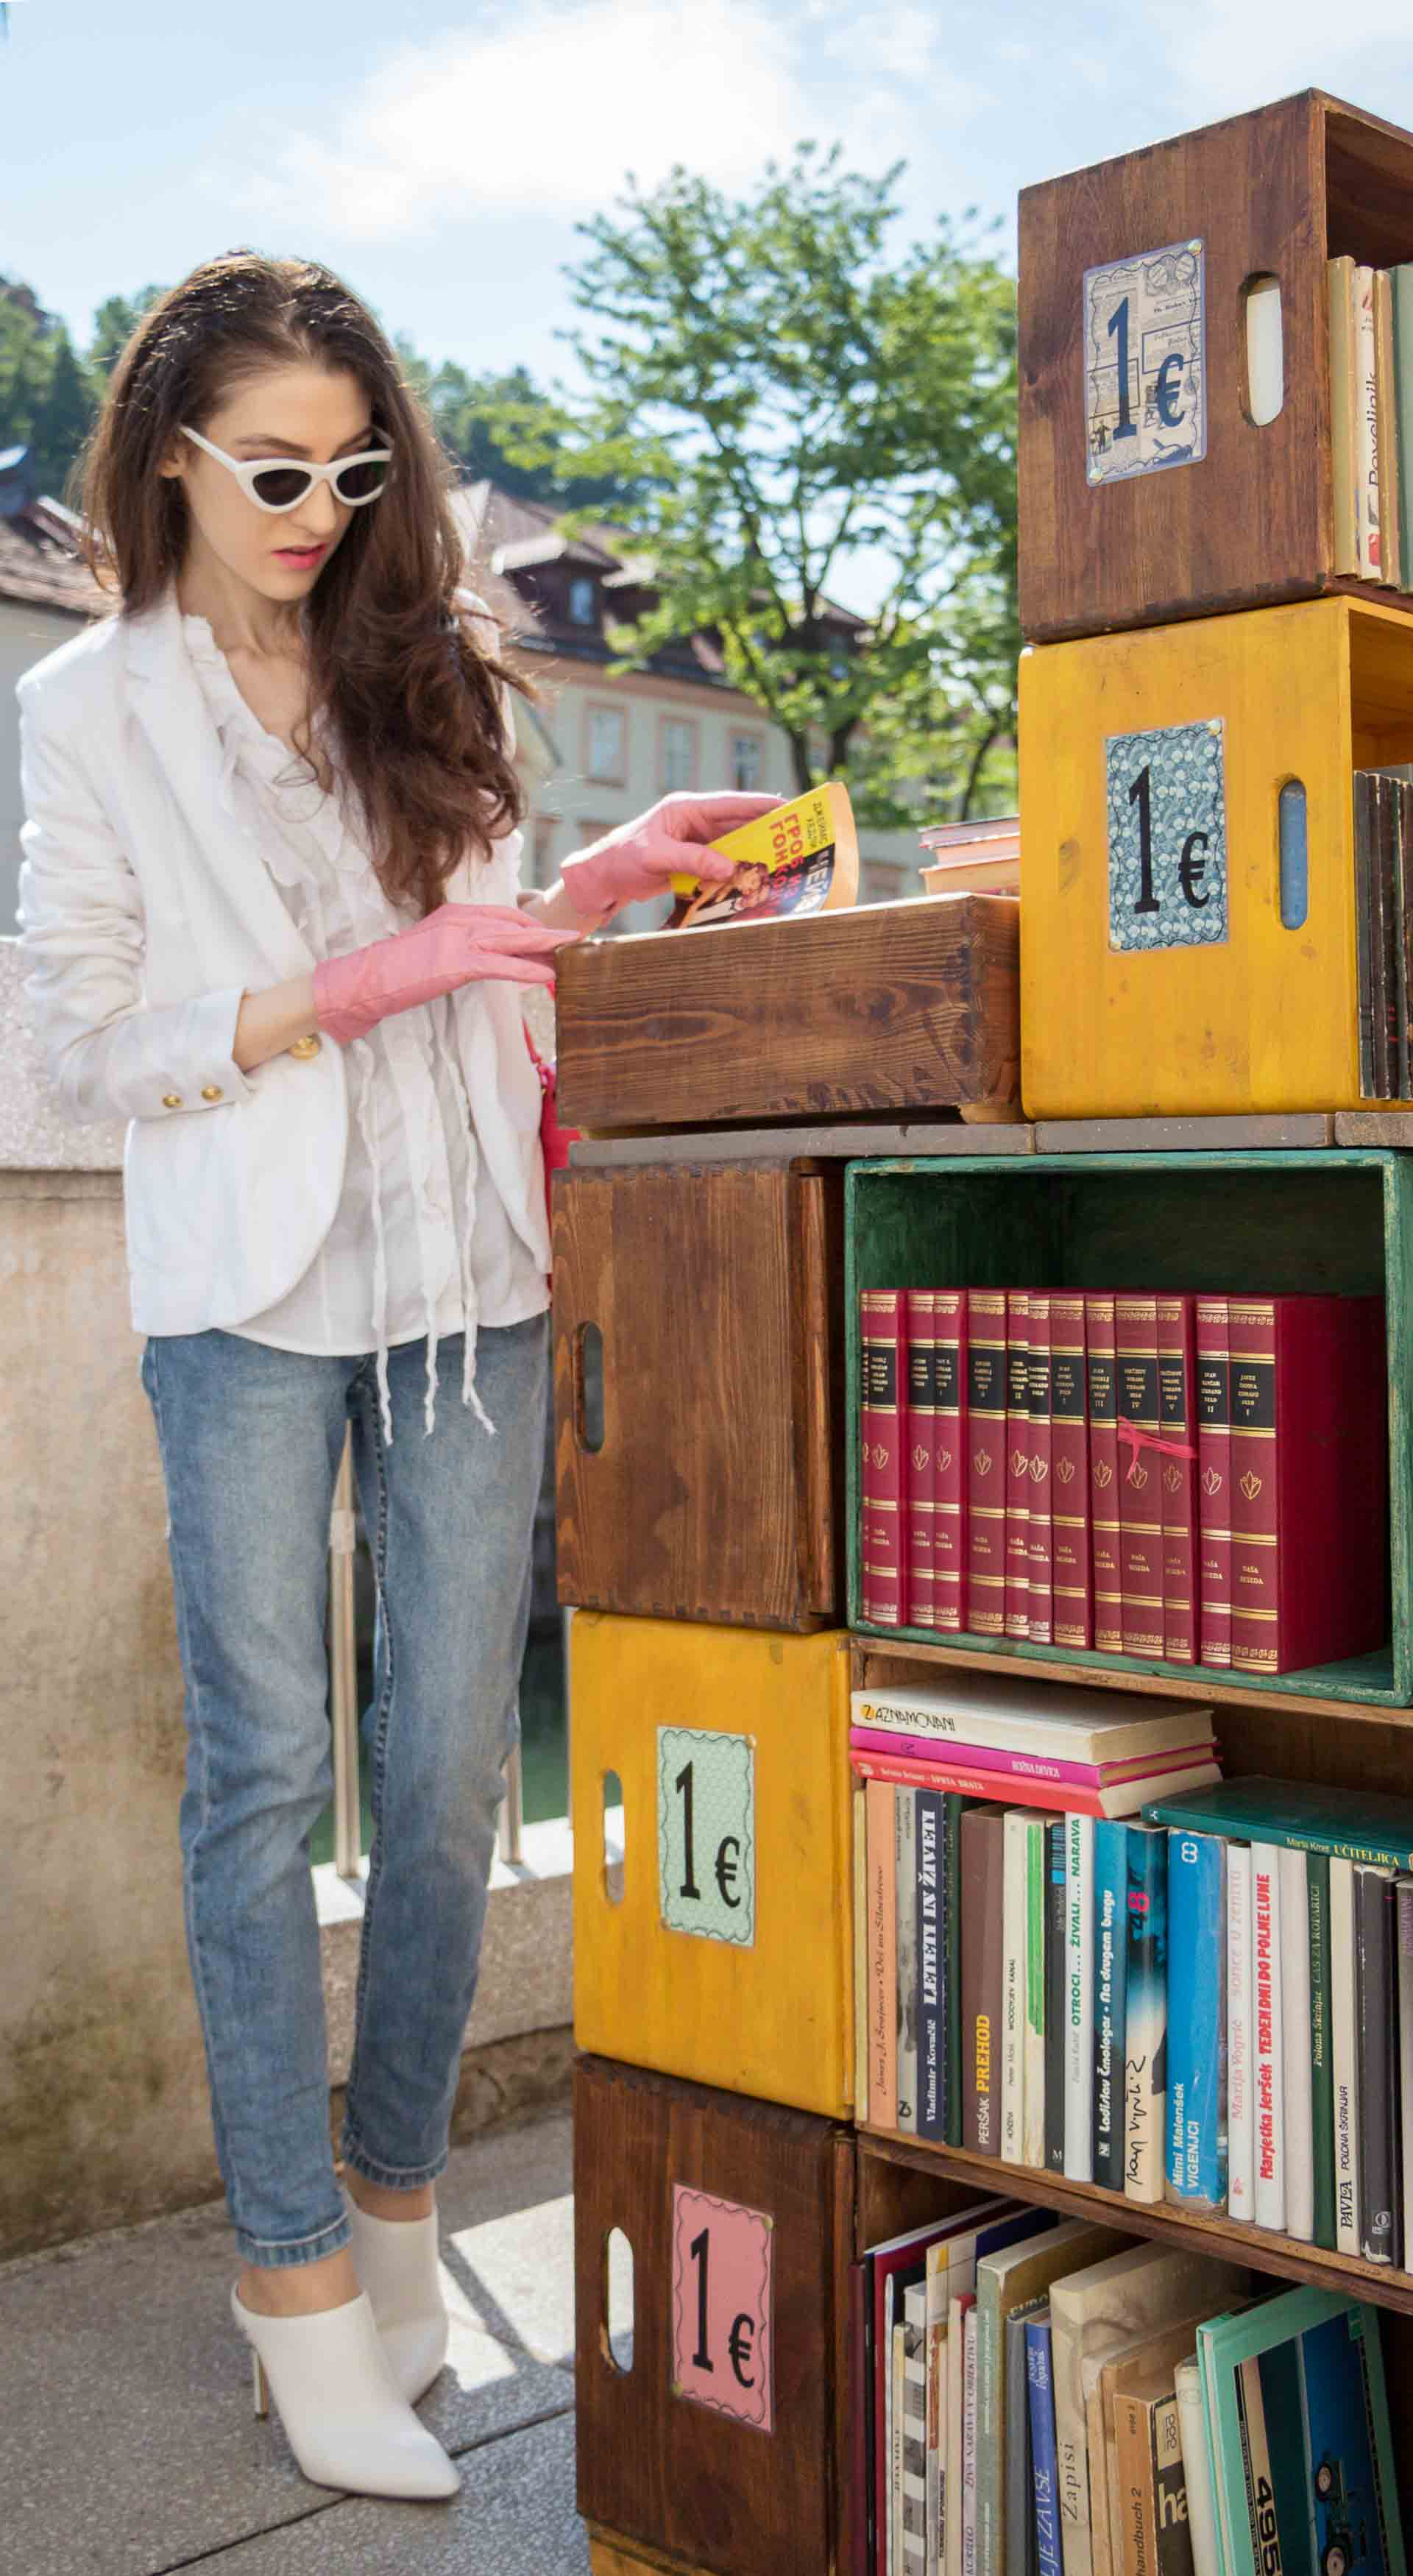 Veronika Lipar Fashion Blogger of Brunette from Wall Street wearing white mules, blue A.P.C. mom jeans, white fringe blouse, white blazer, pink gloves, pink top handle bag and Le Specs Lolita white cat eye sunglasses while choosing a book at the book stand on the street